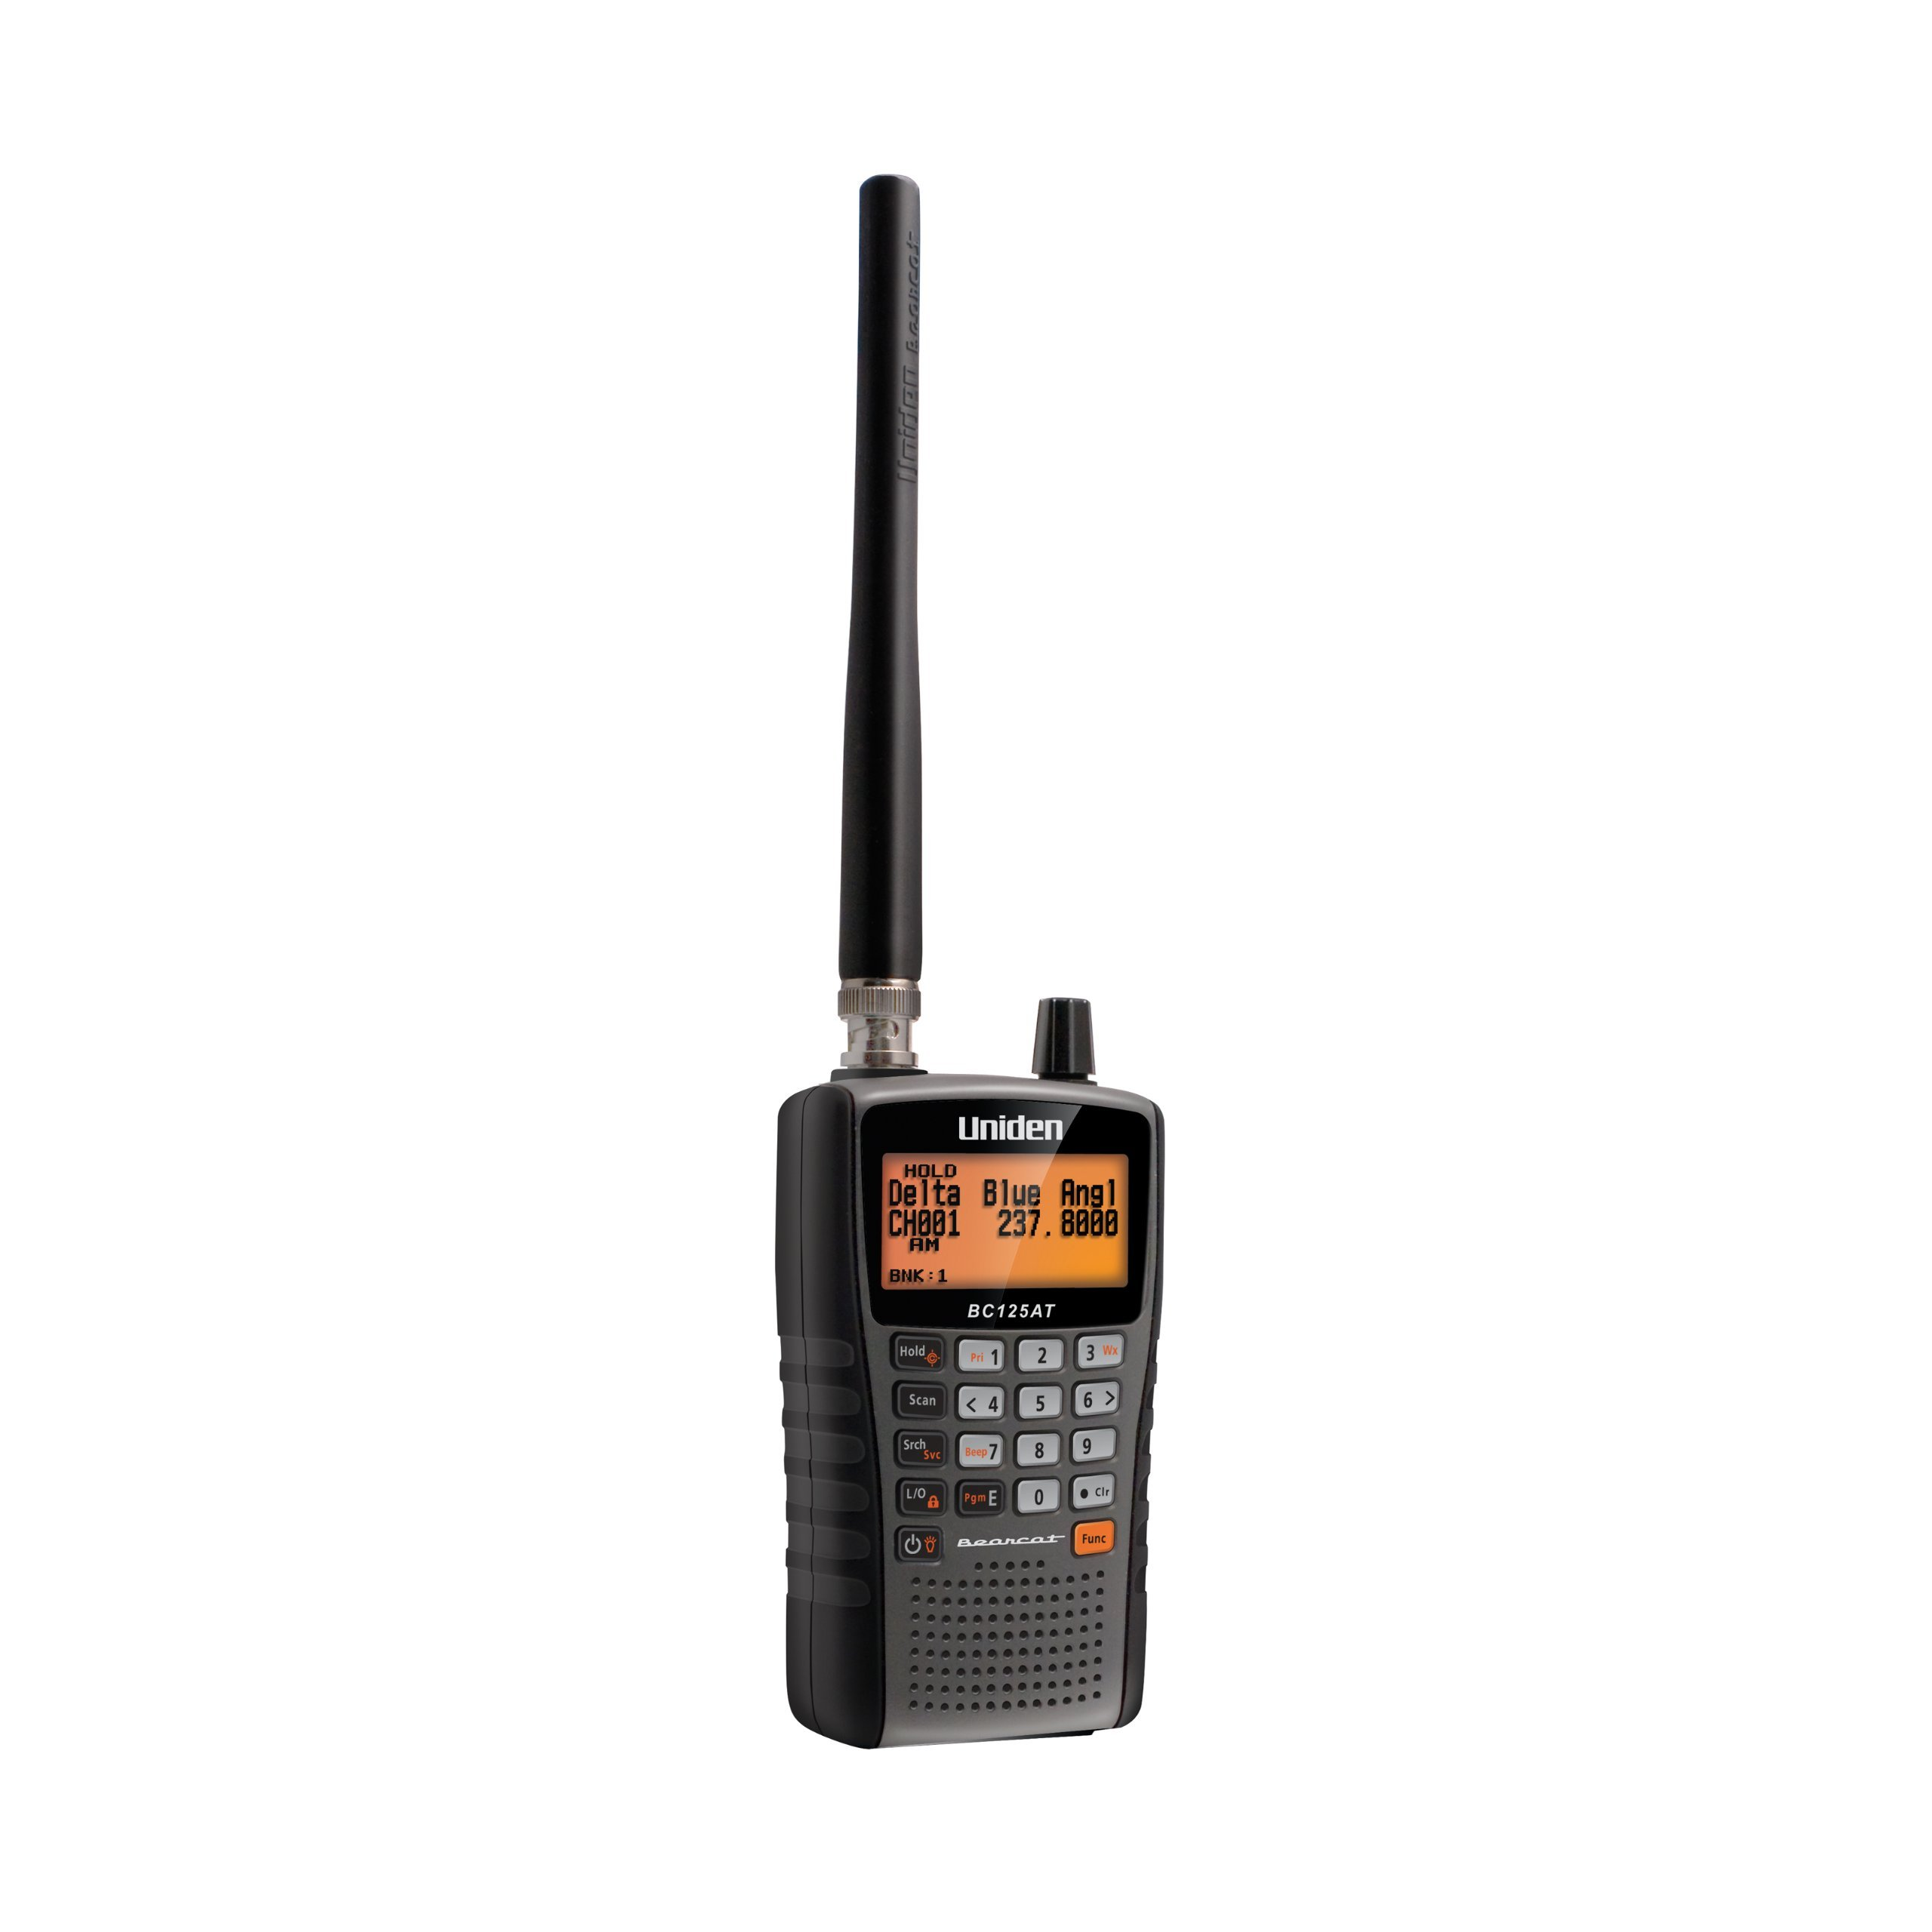 Uniden Bearcat BC125AT Handheld Scanner. 500 Alpha-Tagged channels. Public Safety, Police, Fire, Emergency, Marine, Military Aircraft, and Auto Racing Scanner, Lightweight (Renewed) by Uniden